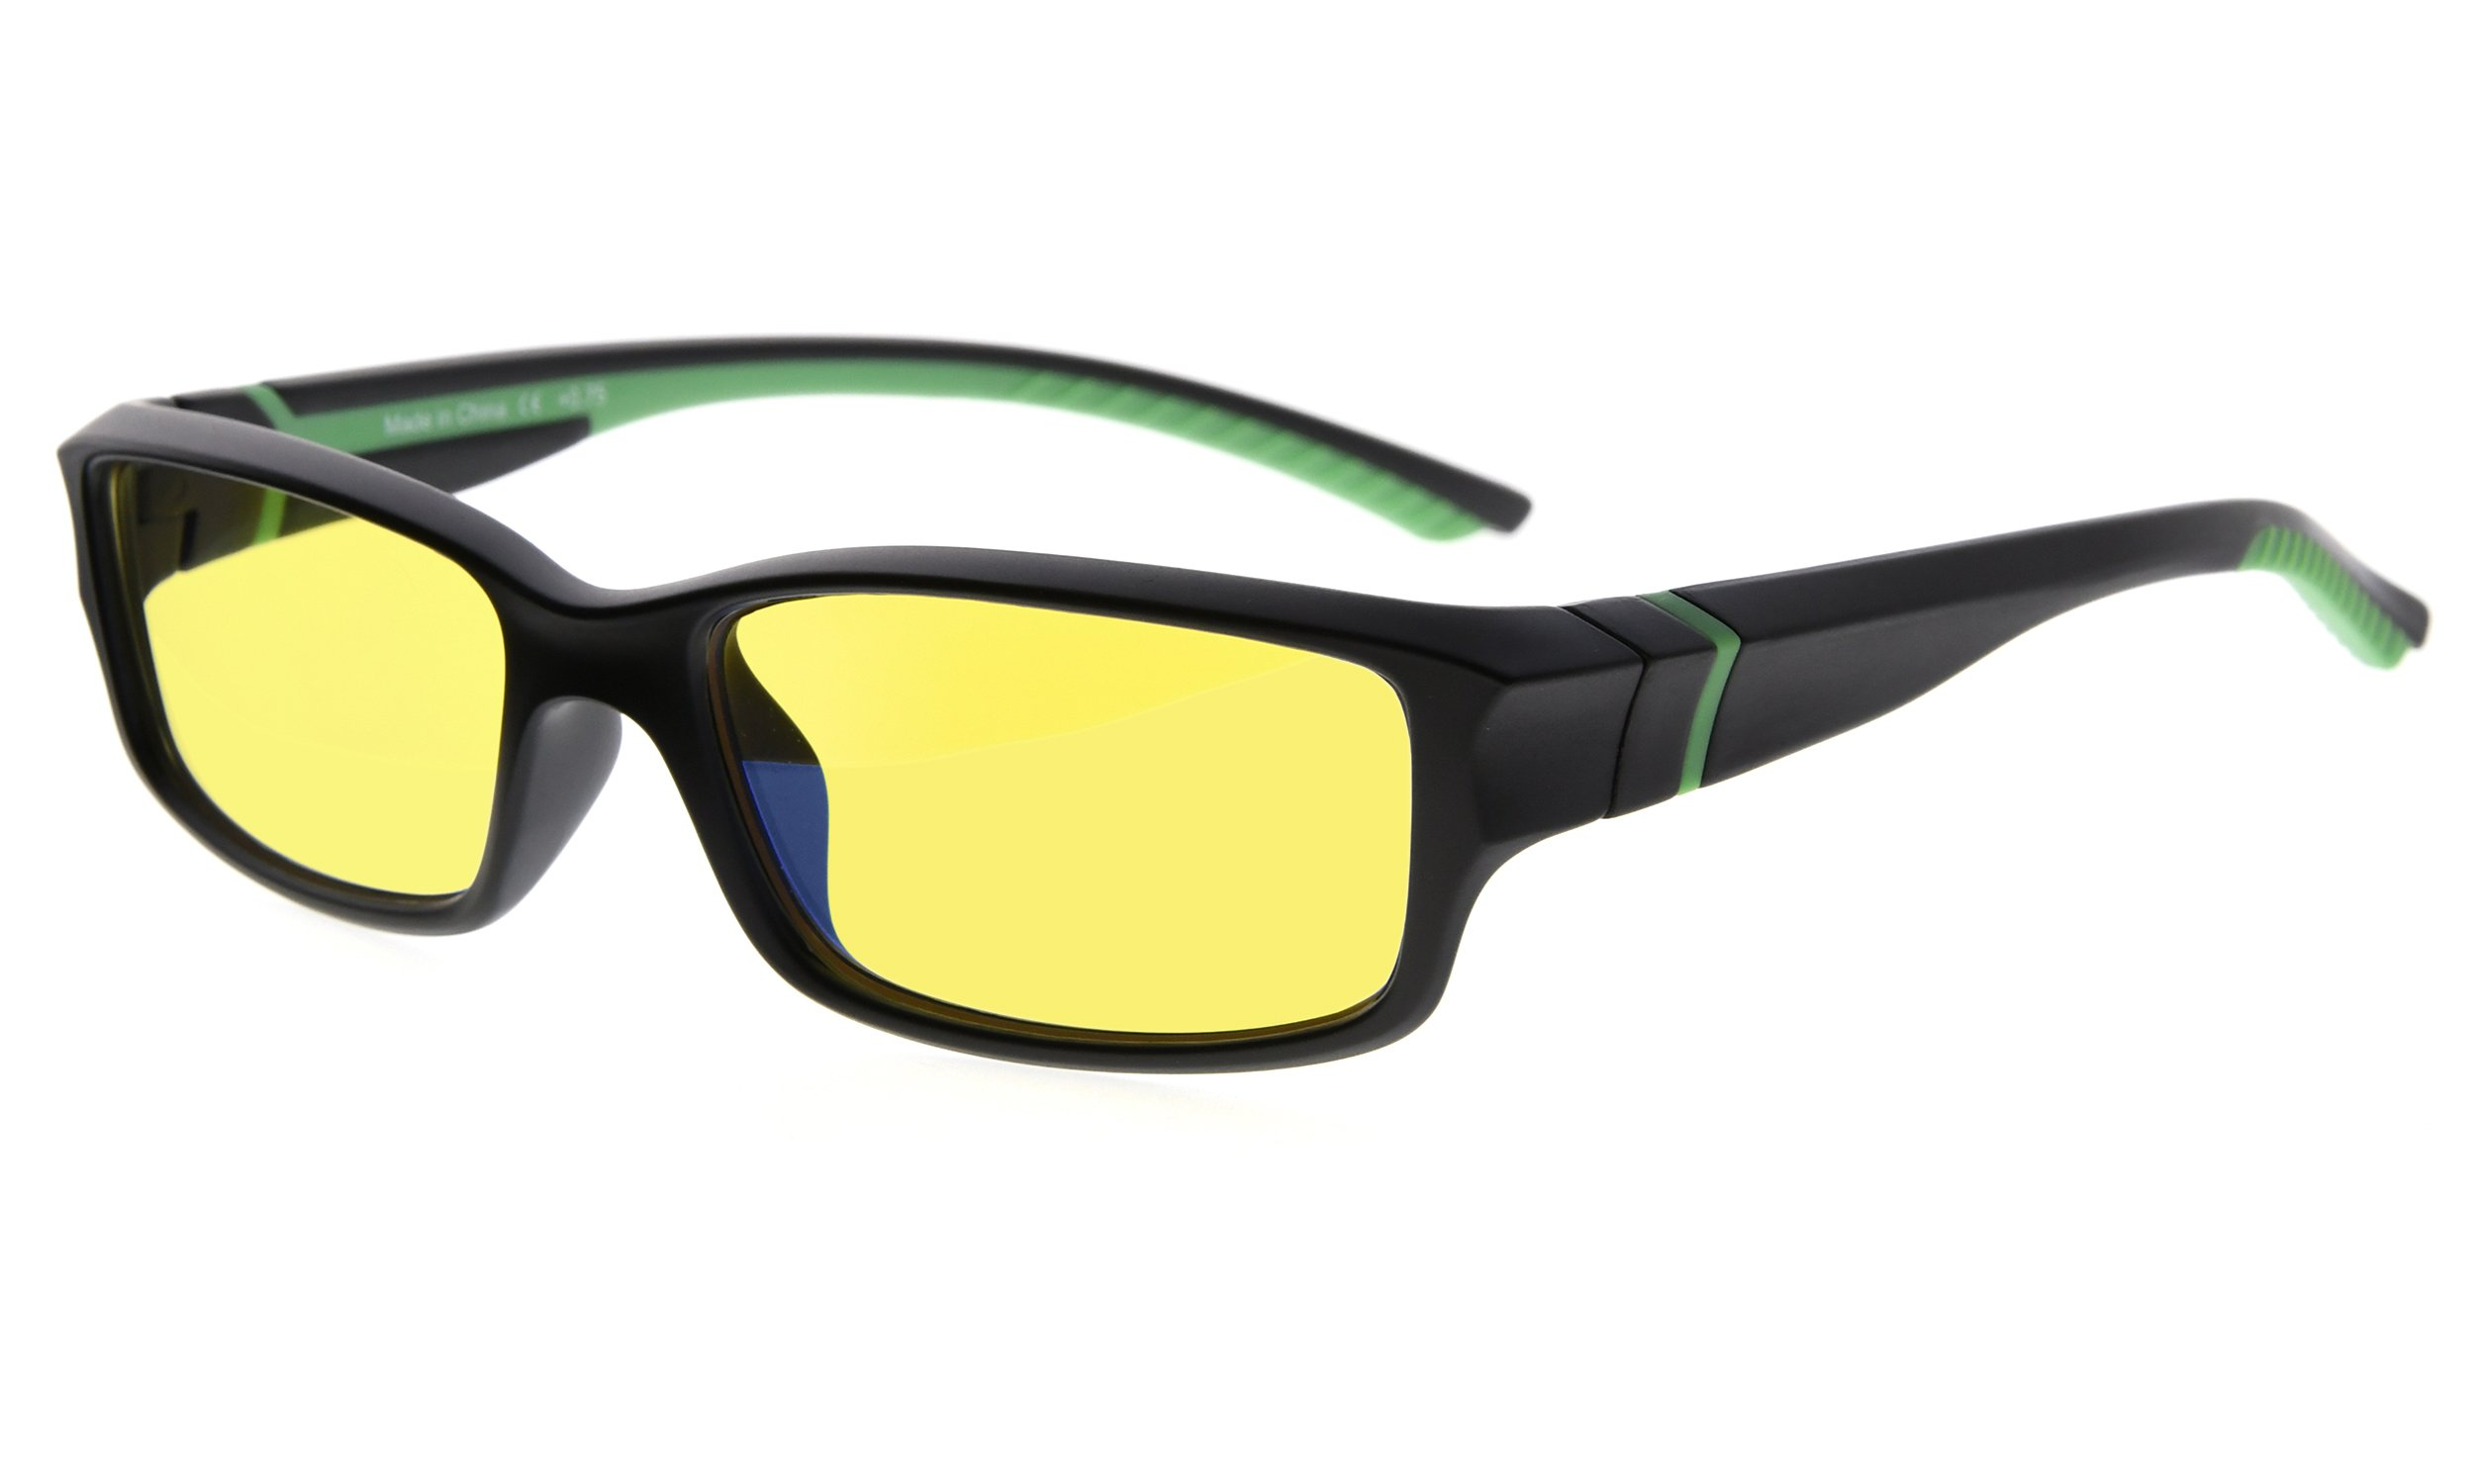 Eyekepper Anti Blue Light More Than 94% Computer Glasses, UV and Computer/TV Electromagnetic Radiation Protection,Scratch Resistant, Yellow Tinted Lens (Black/Green Arm +0.00)